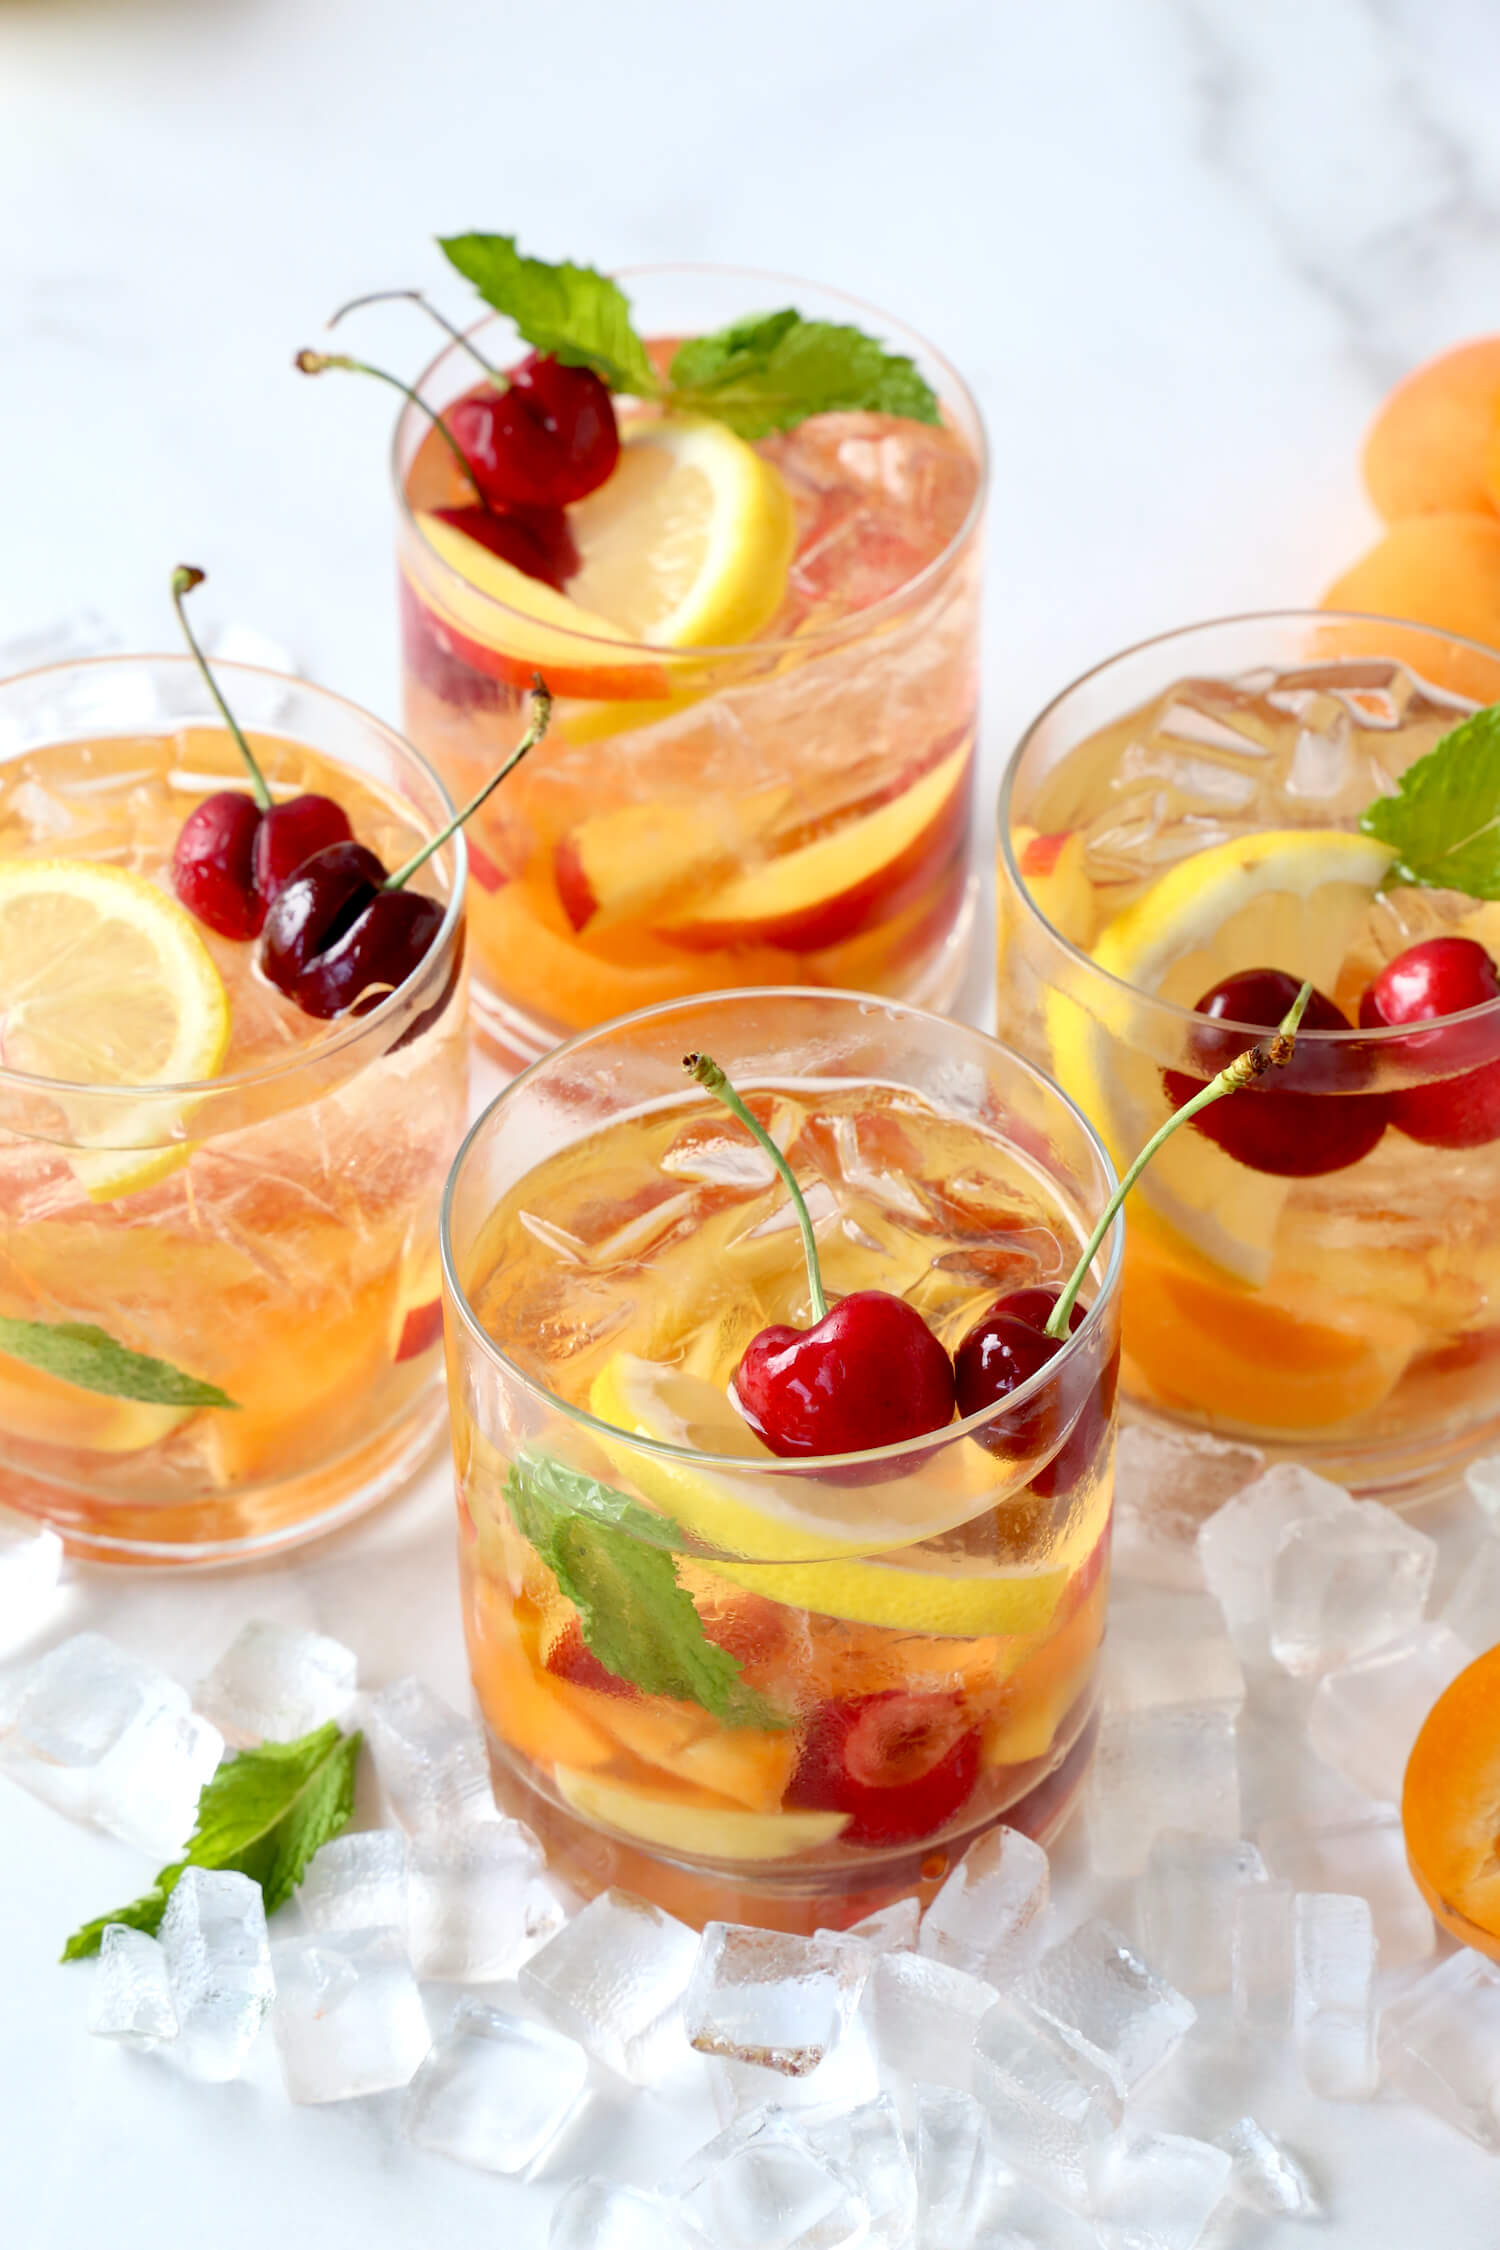 Four glasses filled with rose wine, cherries, lemons, nectarines and apricots.